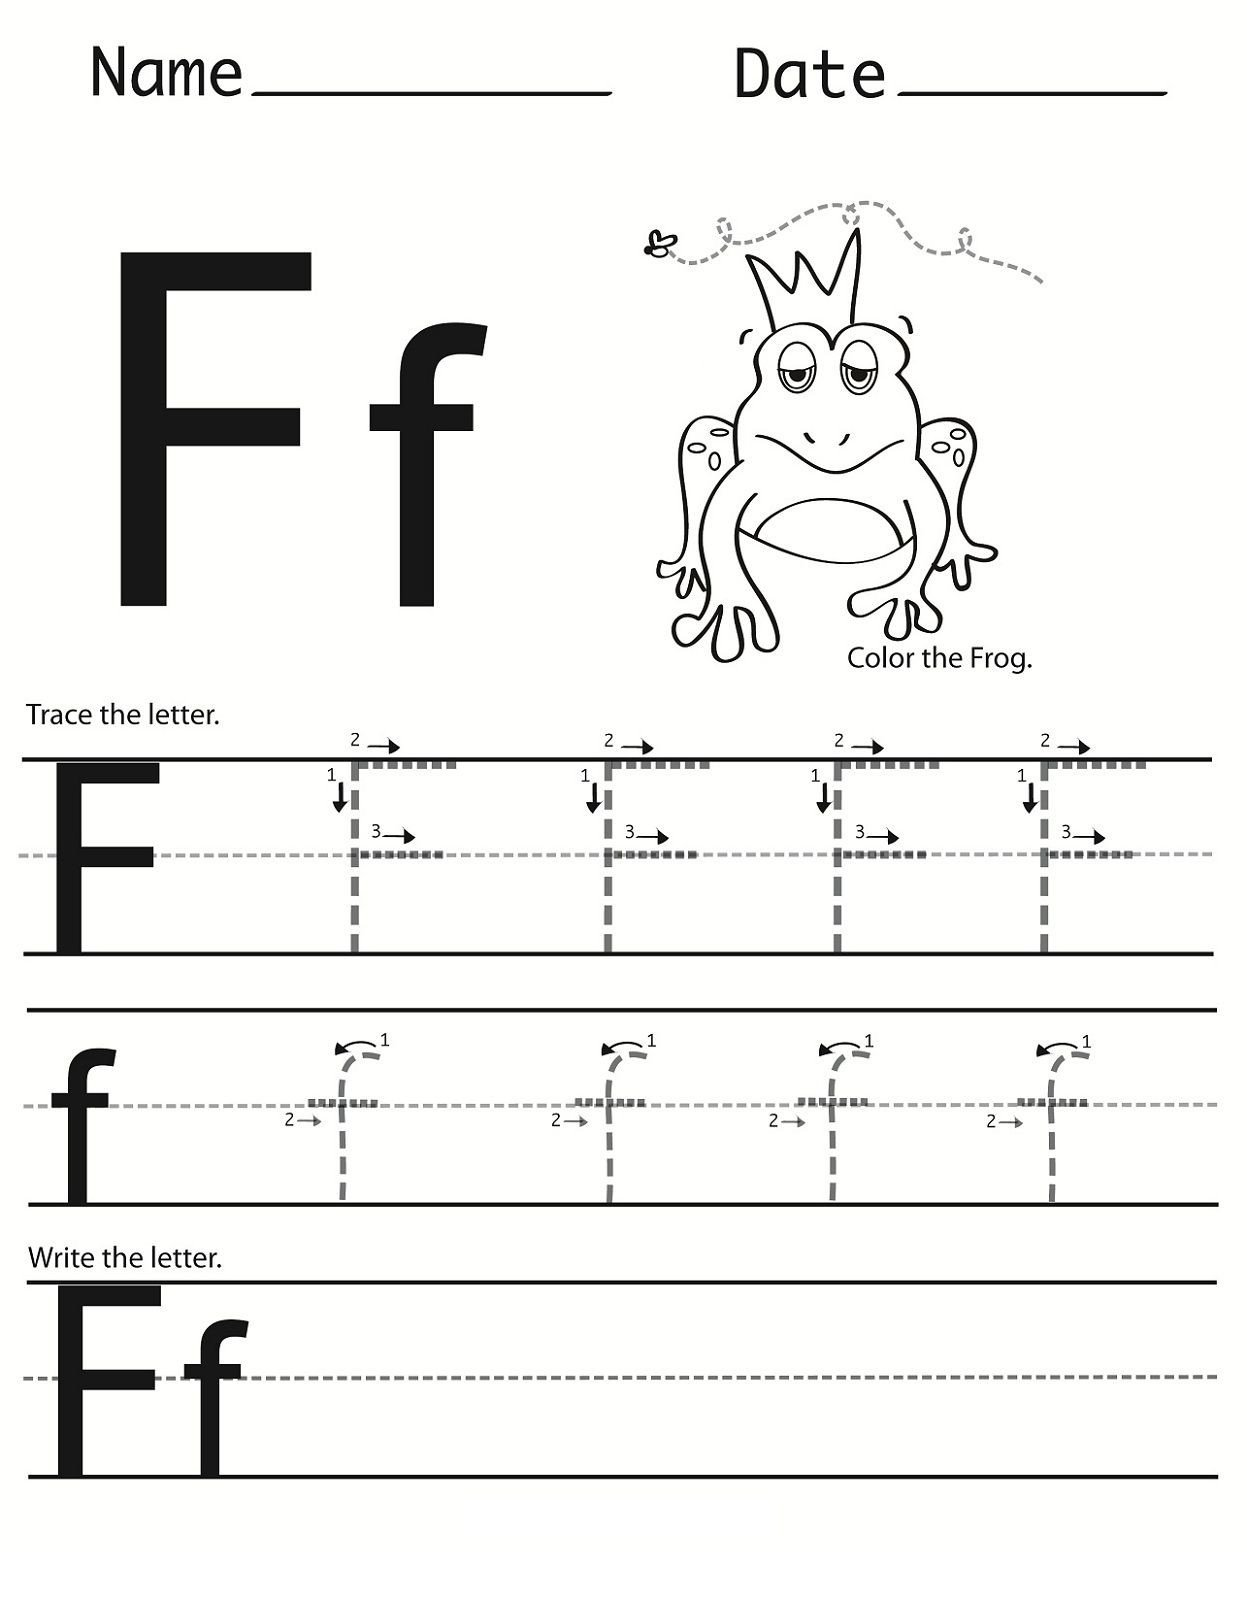 Letter F Worksheets for toddlers Letter F Worksheet for Preschool and Kindergarten